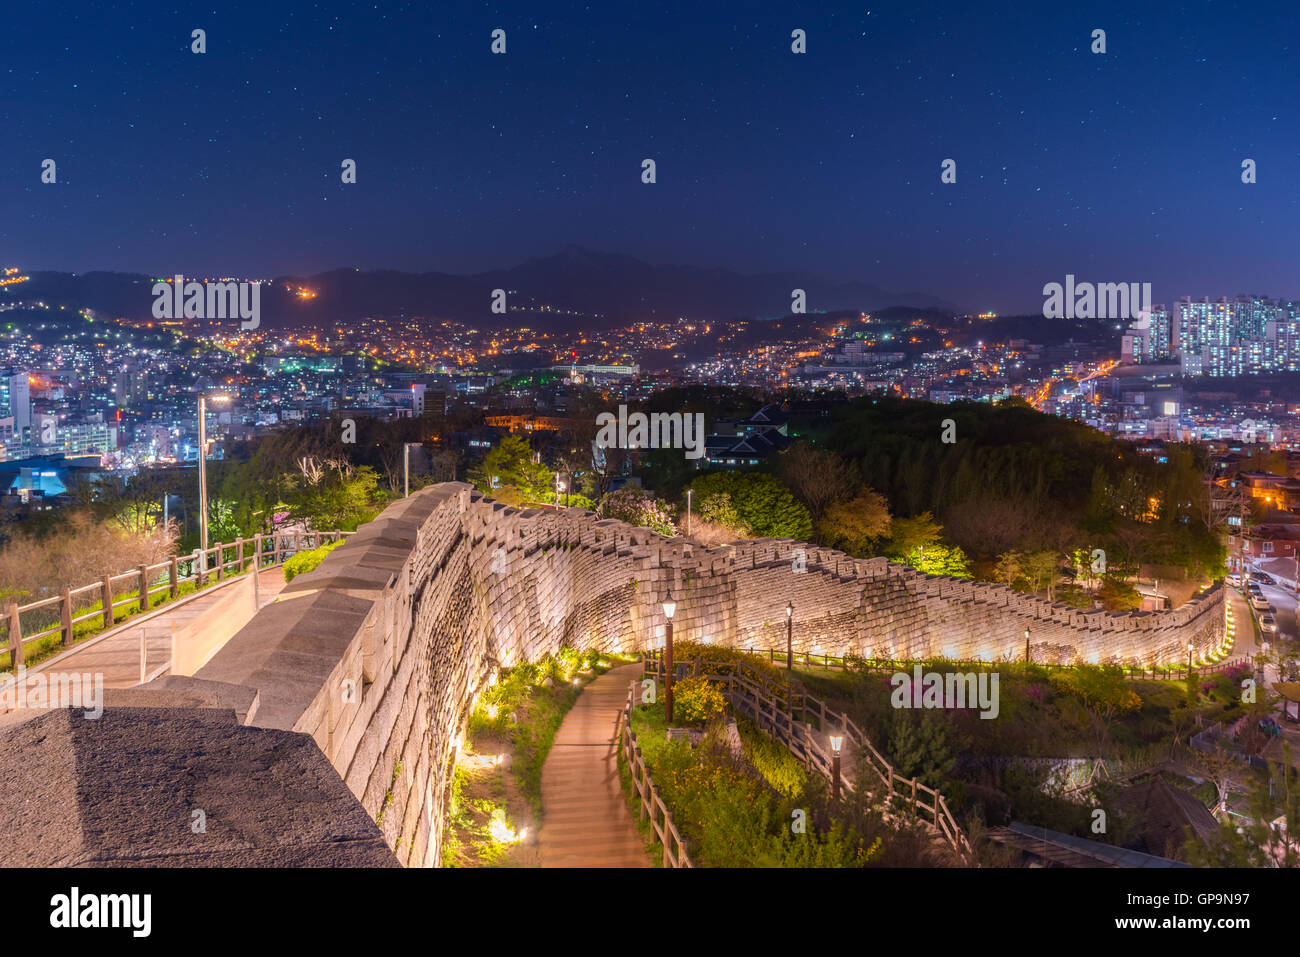 Seoul at night, South Korea city skyline. - Stock Image